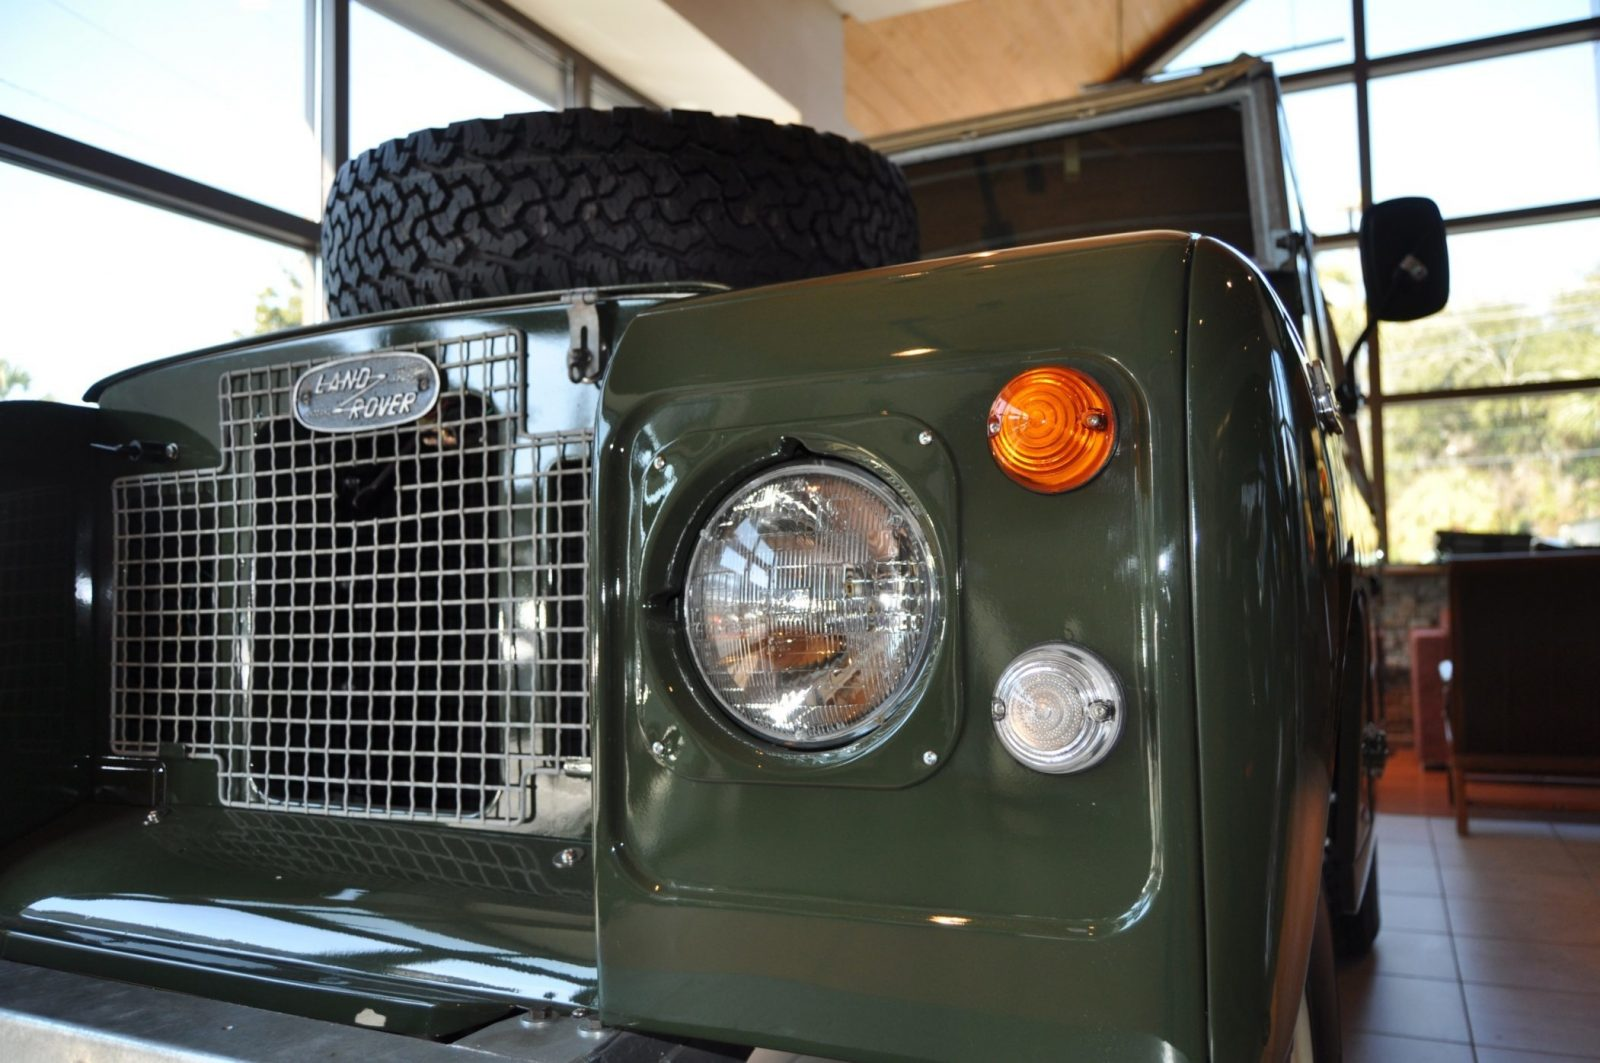 Video Walk-around and Photos - Near-Mint 1969 Land Rover Series II Defender at Baker LR in CHarleston 12